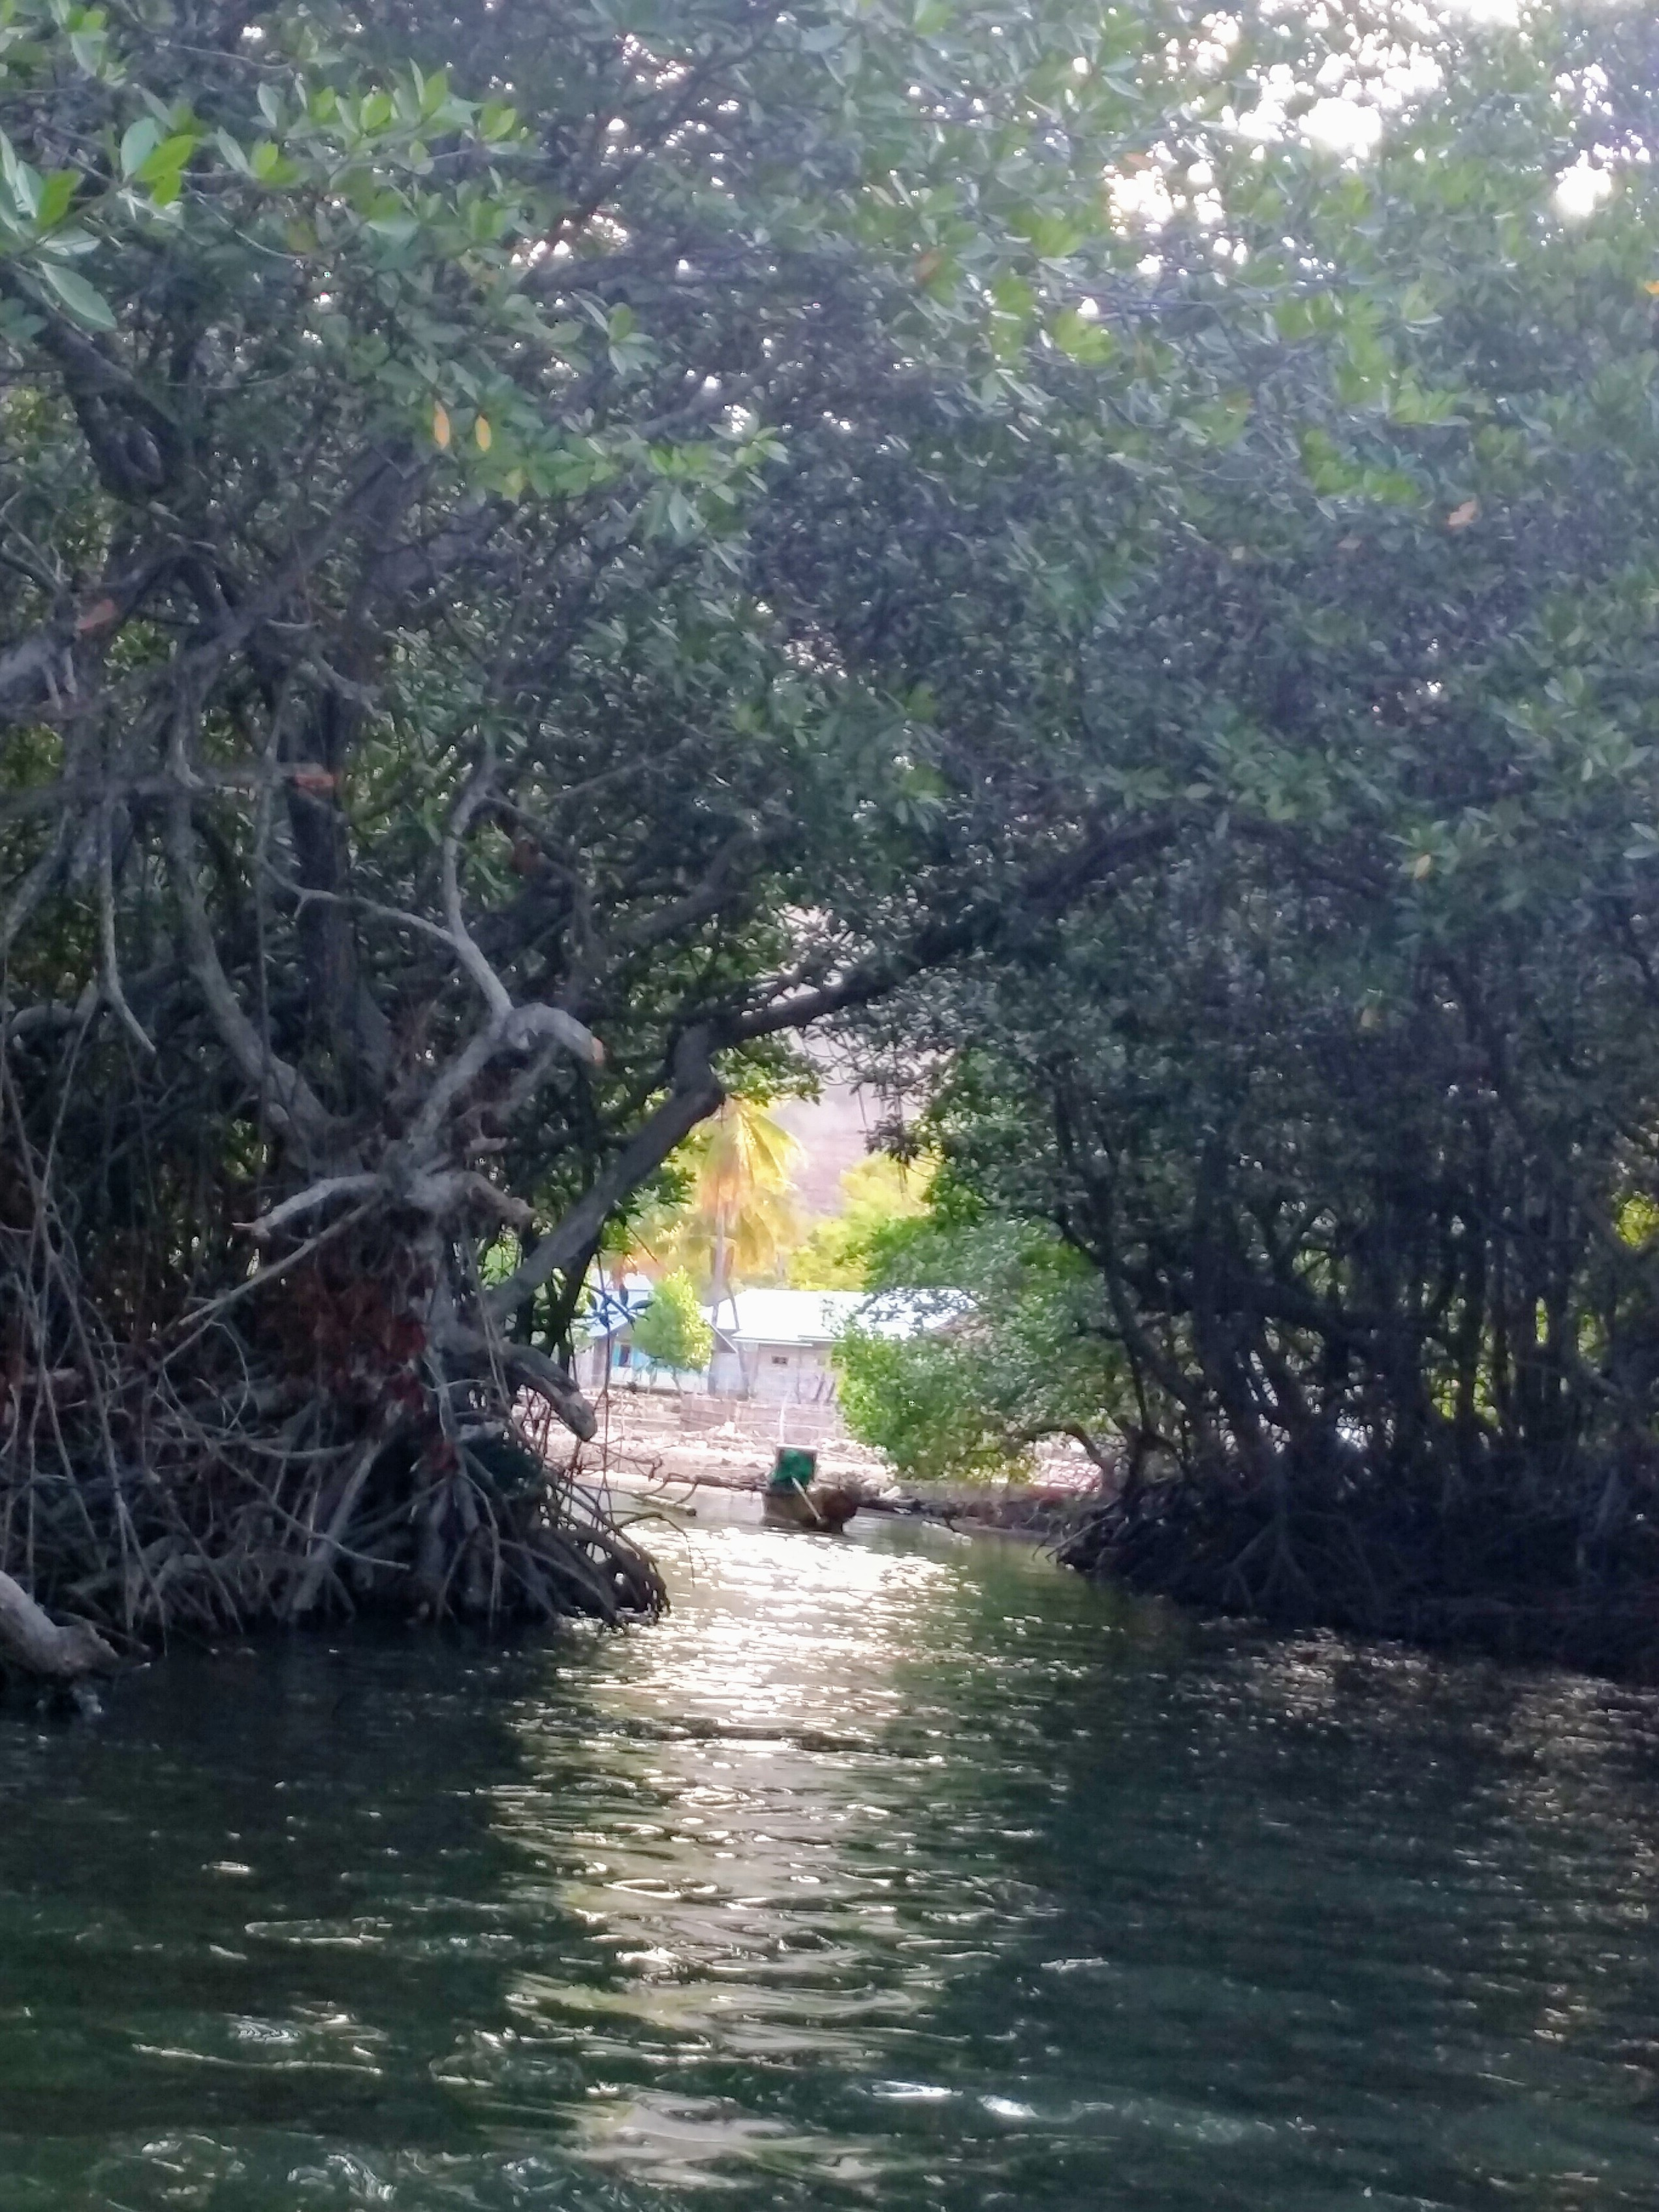 I call this the hobbit hole...a mad made entrance into the mangroves leading to one of the fishing villages